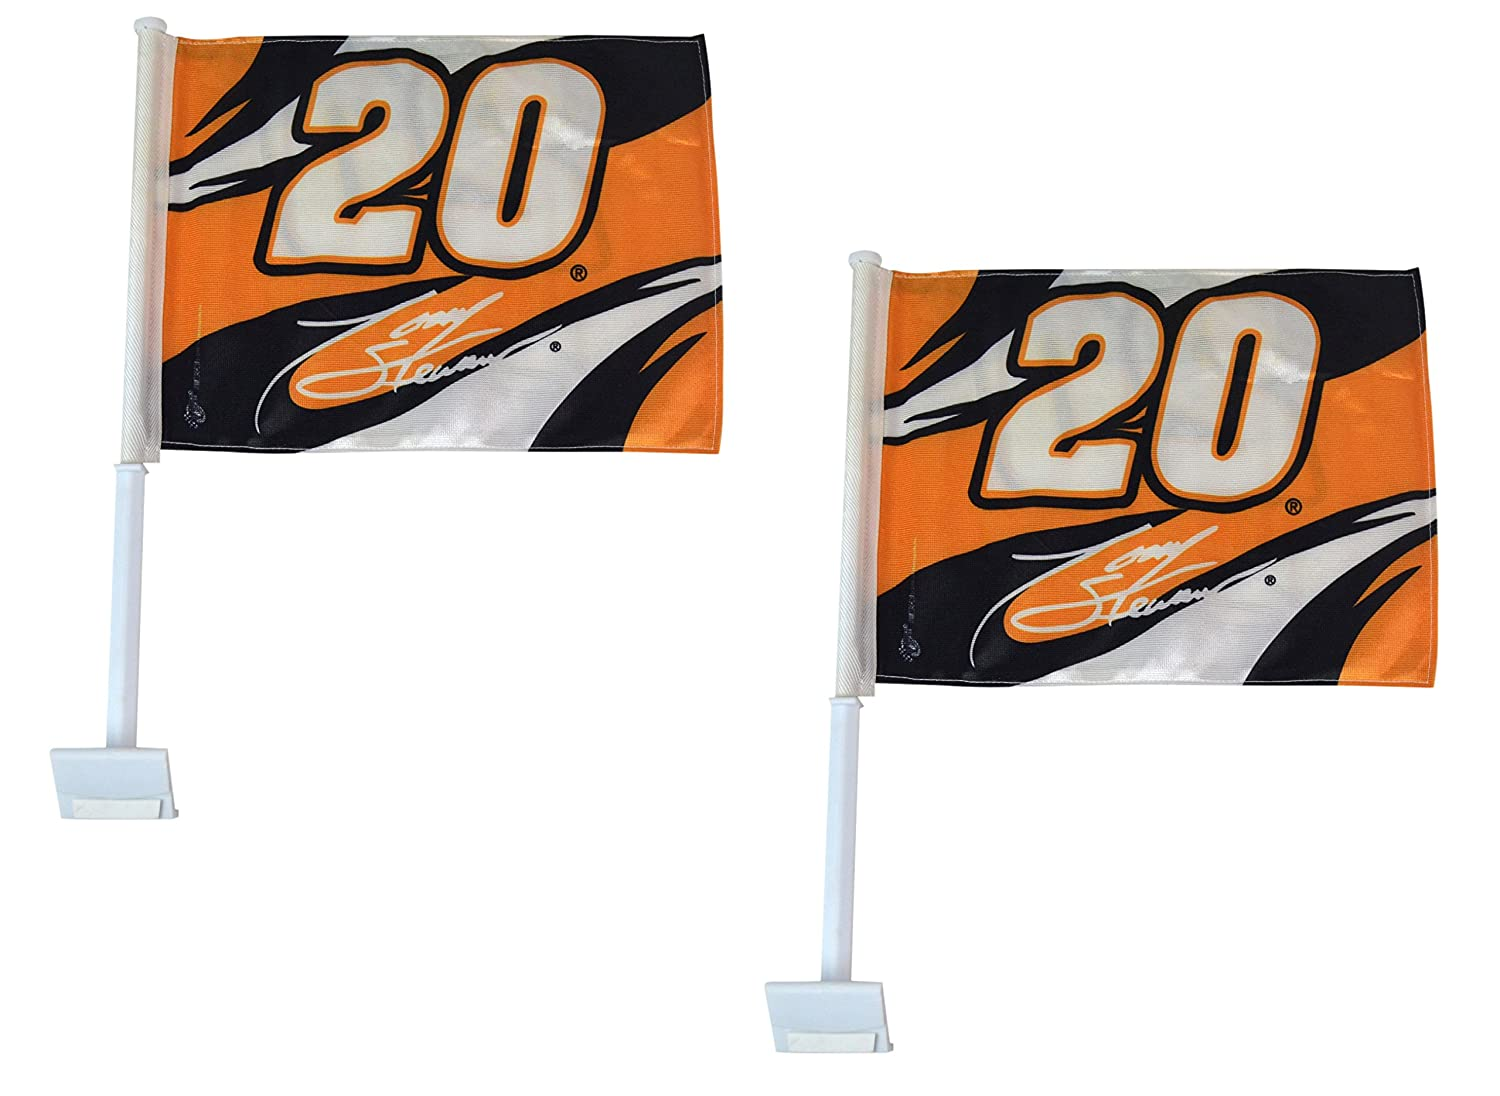 Official NASCAR Fan Shop Authentic Car Window Flags 2-Pack. Show Pride for your favorite NASCAR driver at Track or Driving around Town Winner' s Cricle/NASCAR